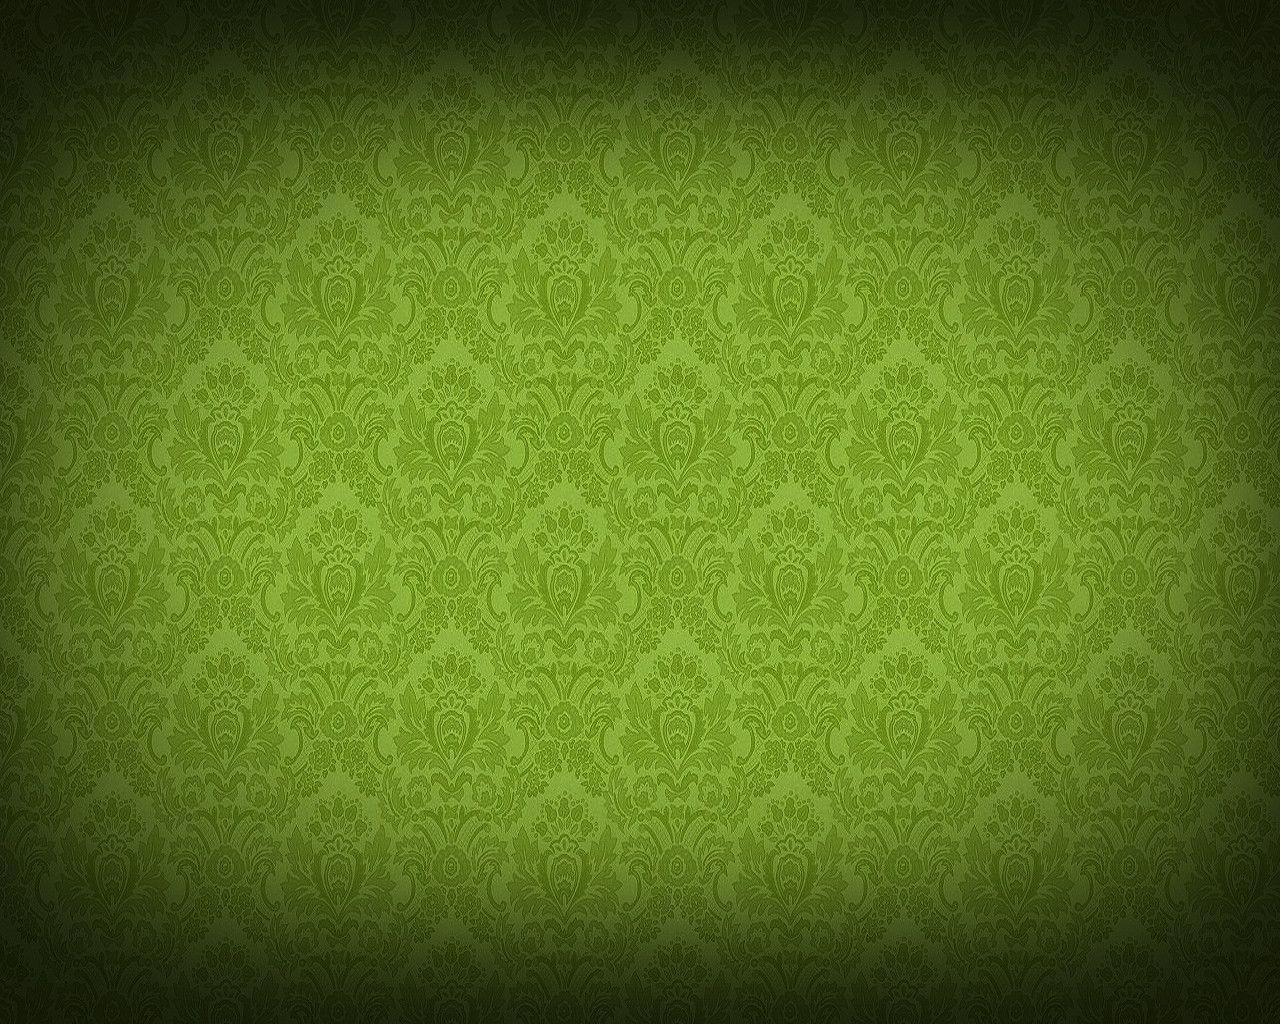 green-pattern-patterns-desktop-1280x1024-wanted-wallpaper – Wanted ...